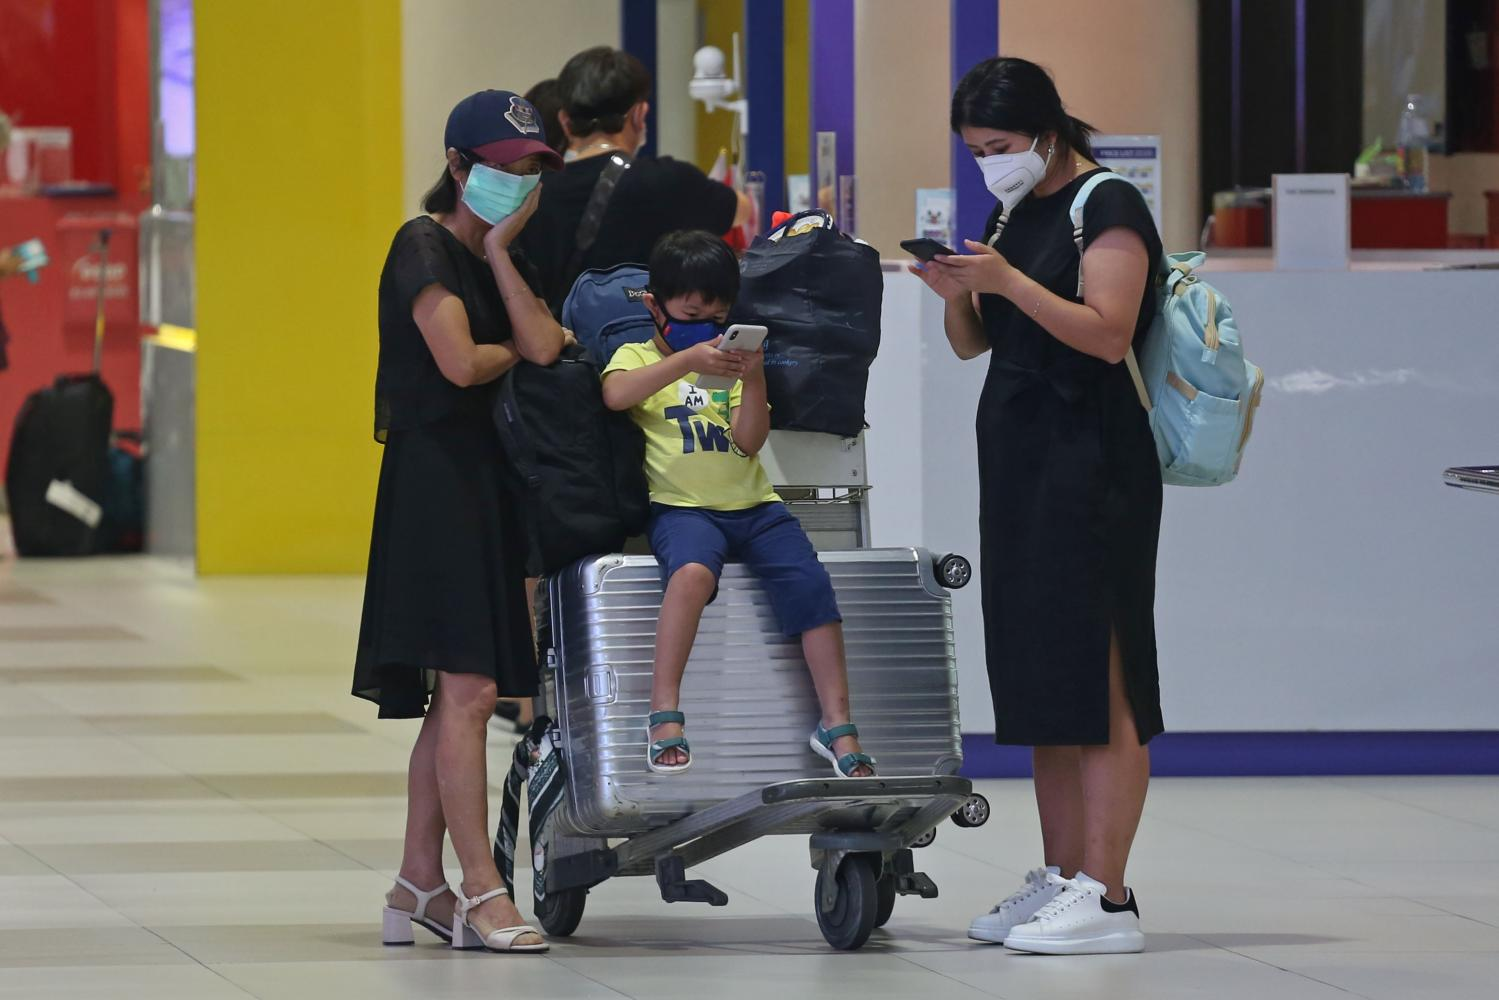 Passengers wear masks at Don Mueang airport to help prevent the spread of coronavirus.(Photo by Varuth Hirunyatheb)